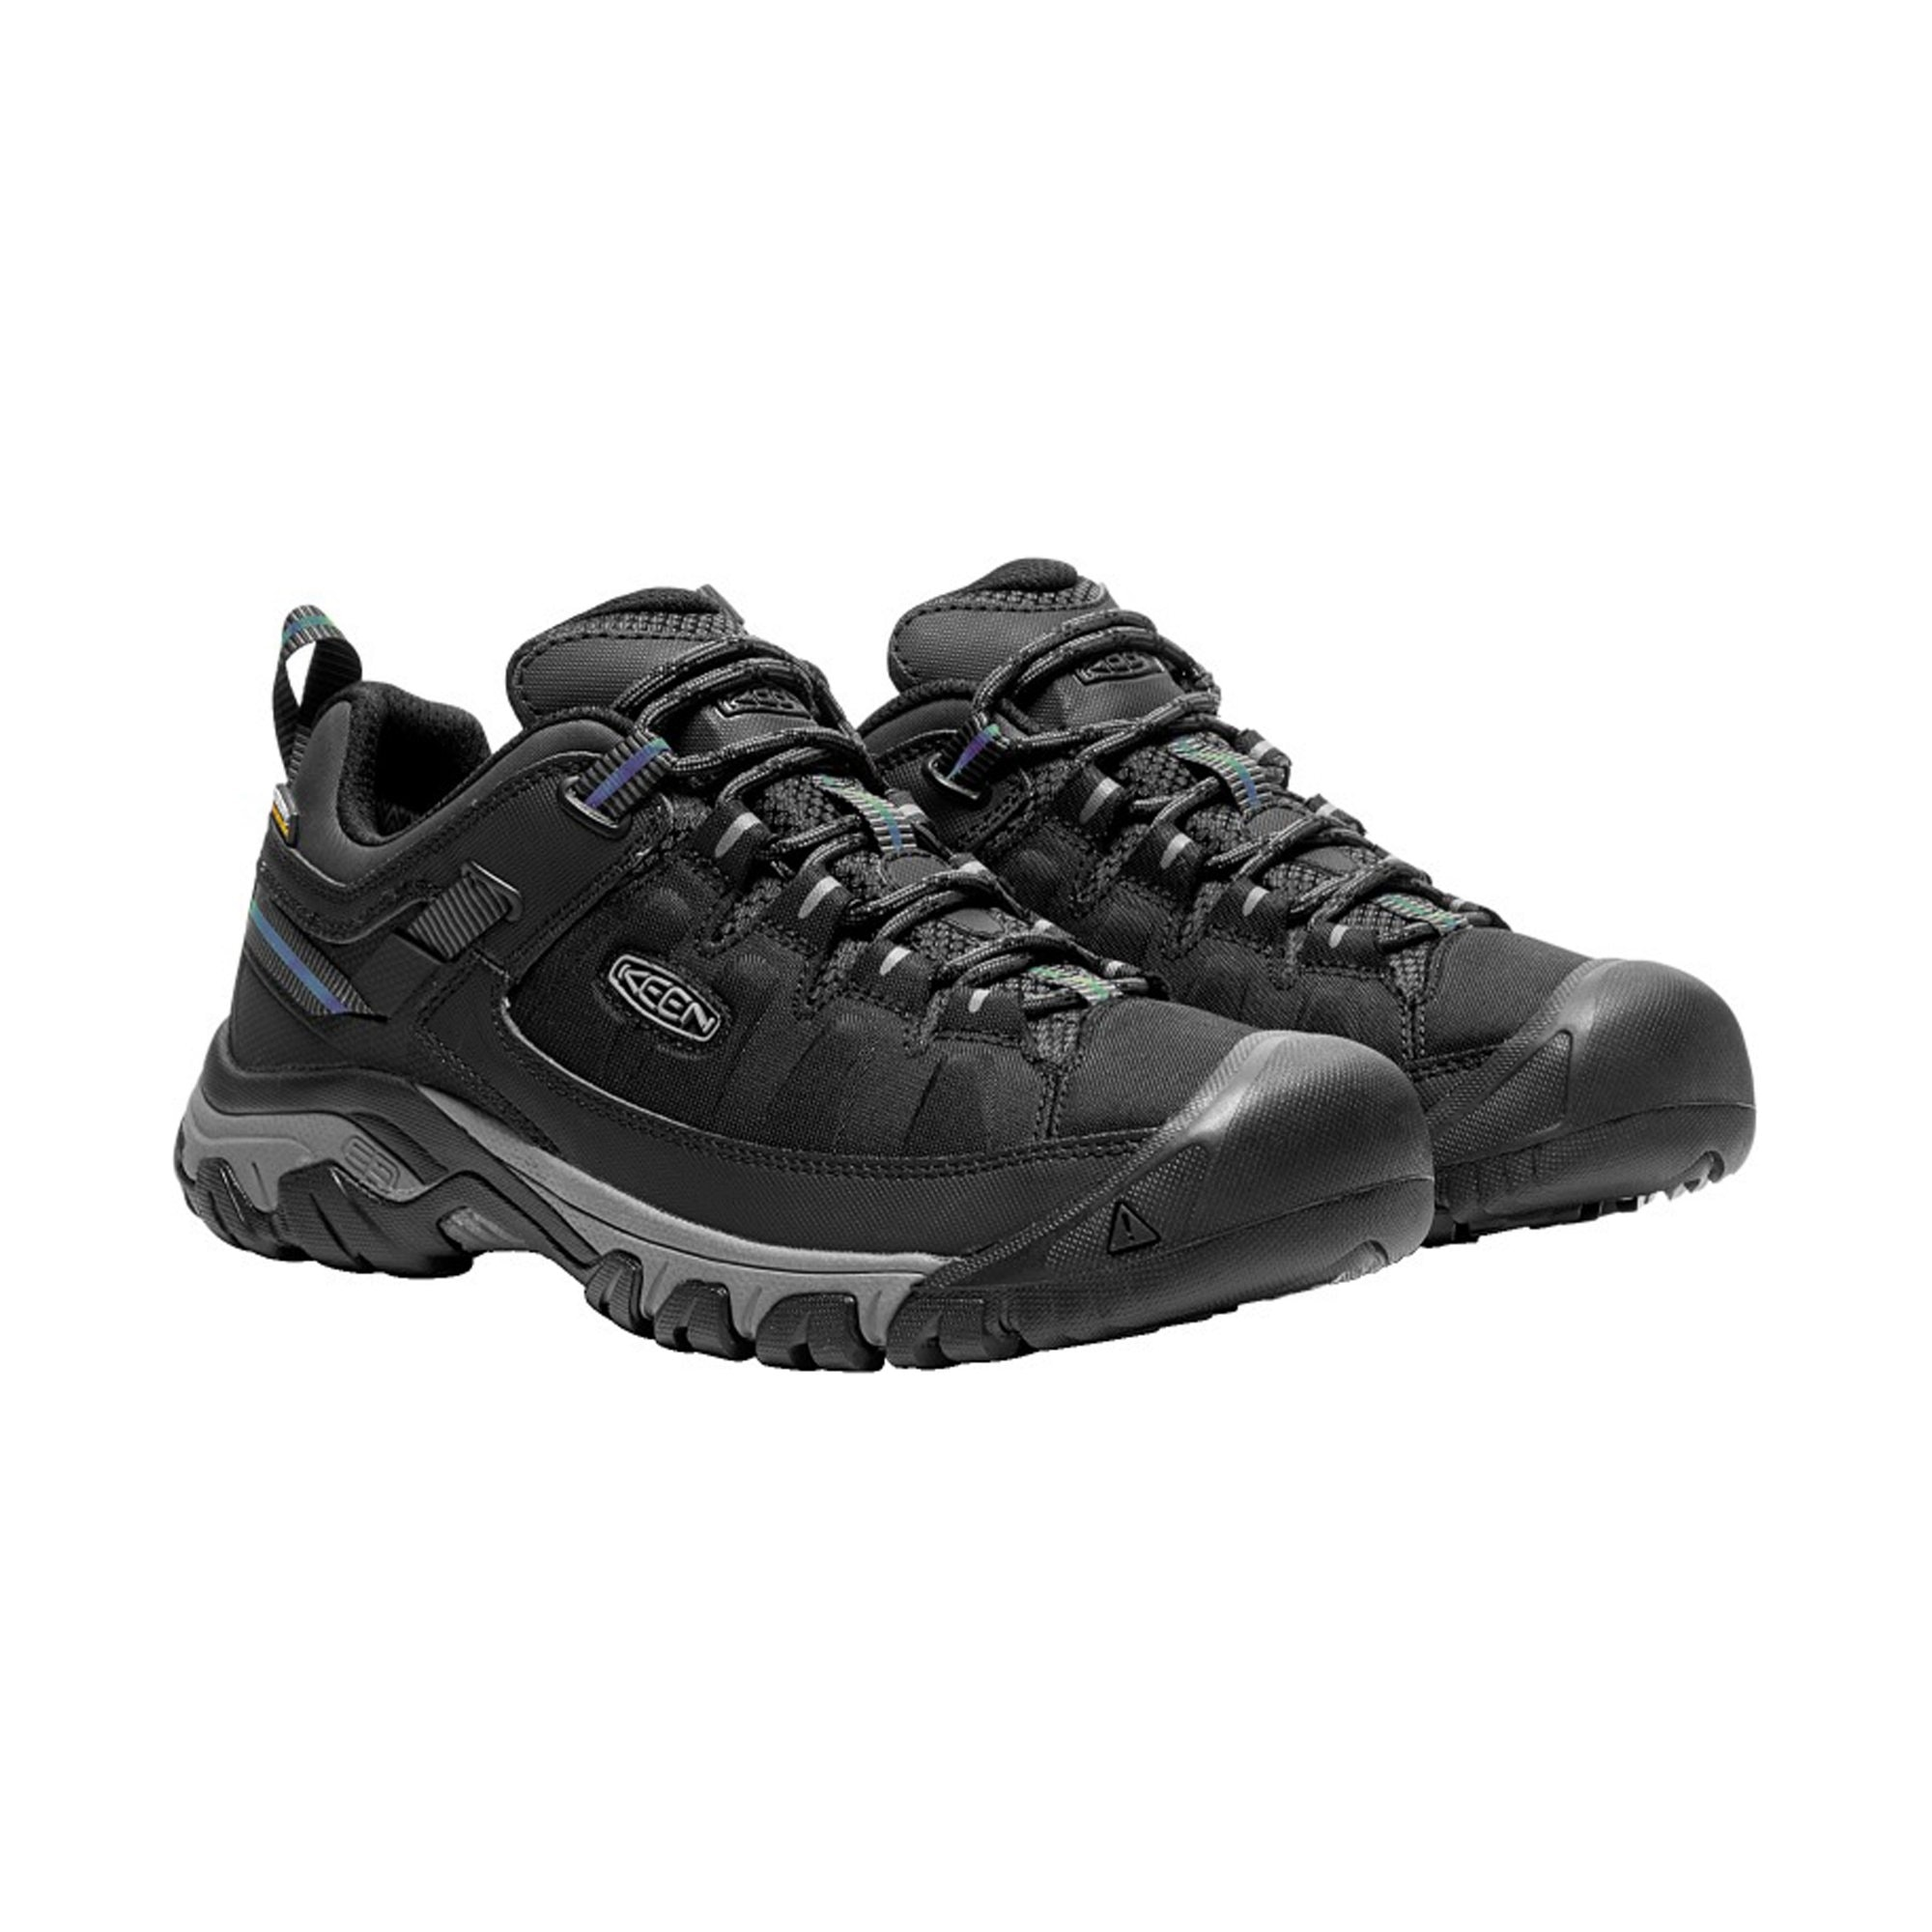 cb455c284c9 Details about NEW Keen Targhee EXP Waterproof Men's Comfortable Breathable  Trail Outdoor Shoes